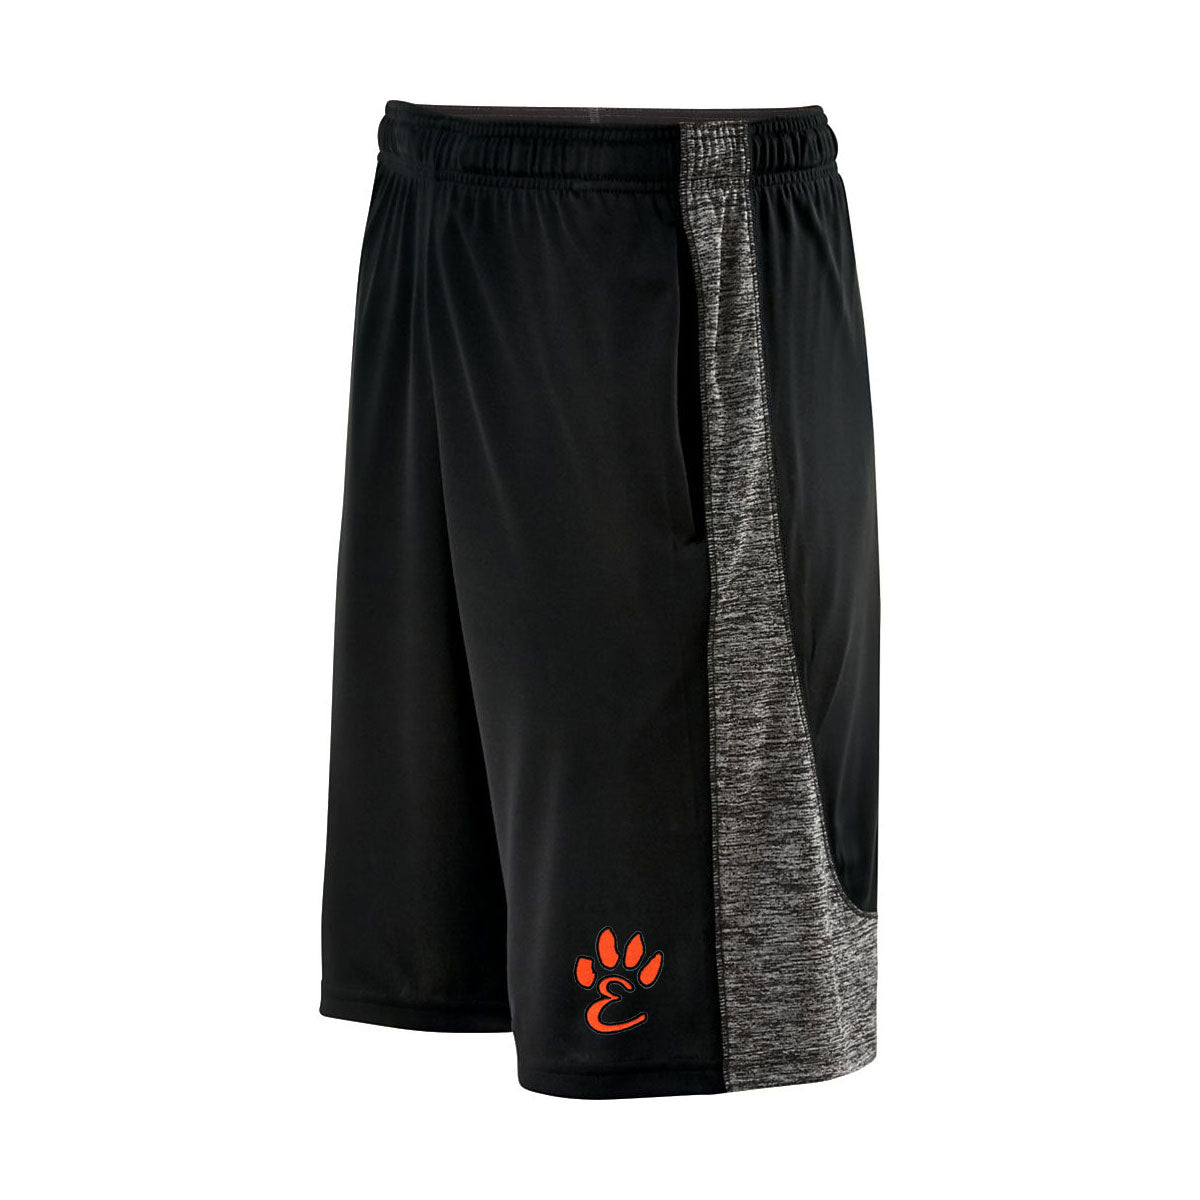 Edwardsville High School Electron Short